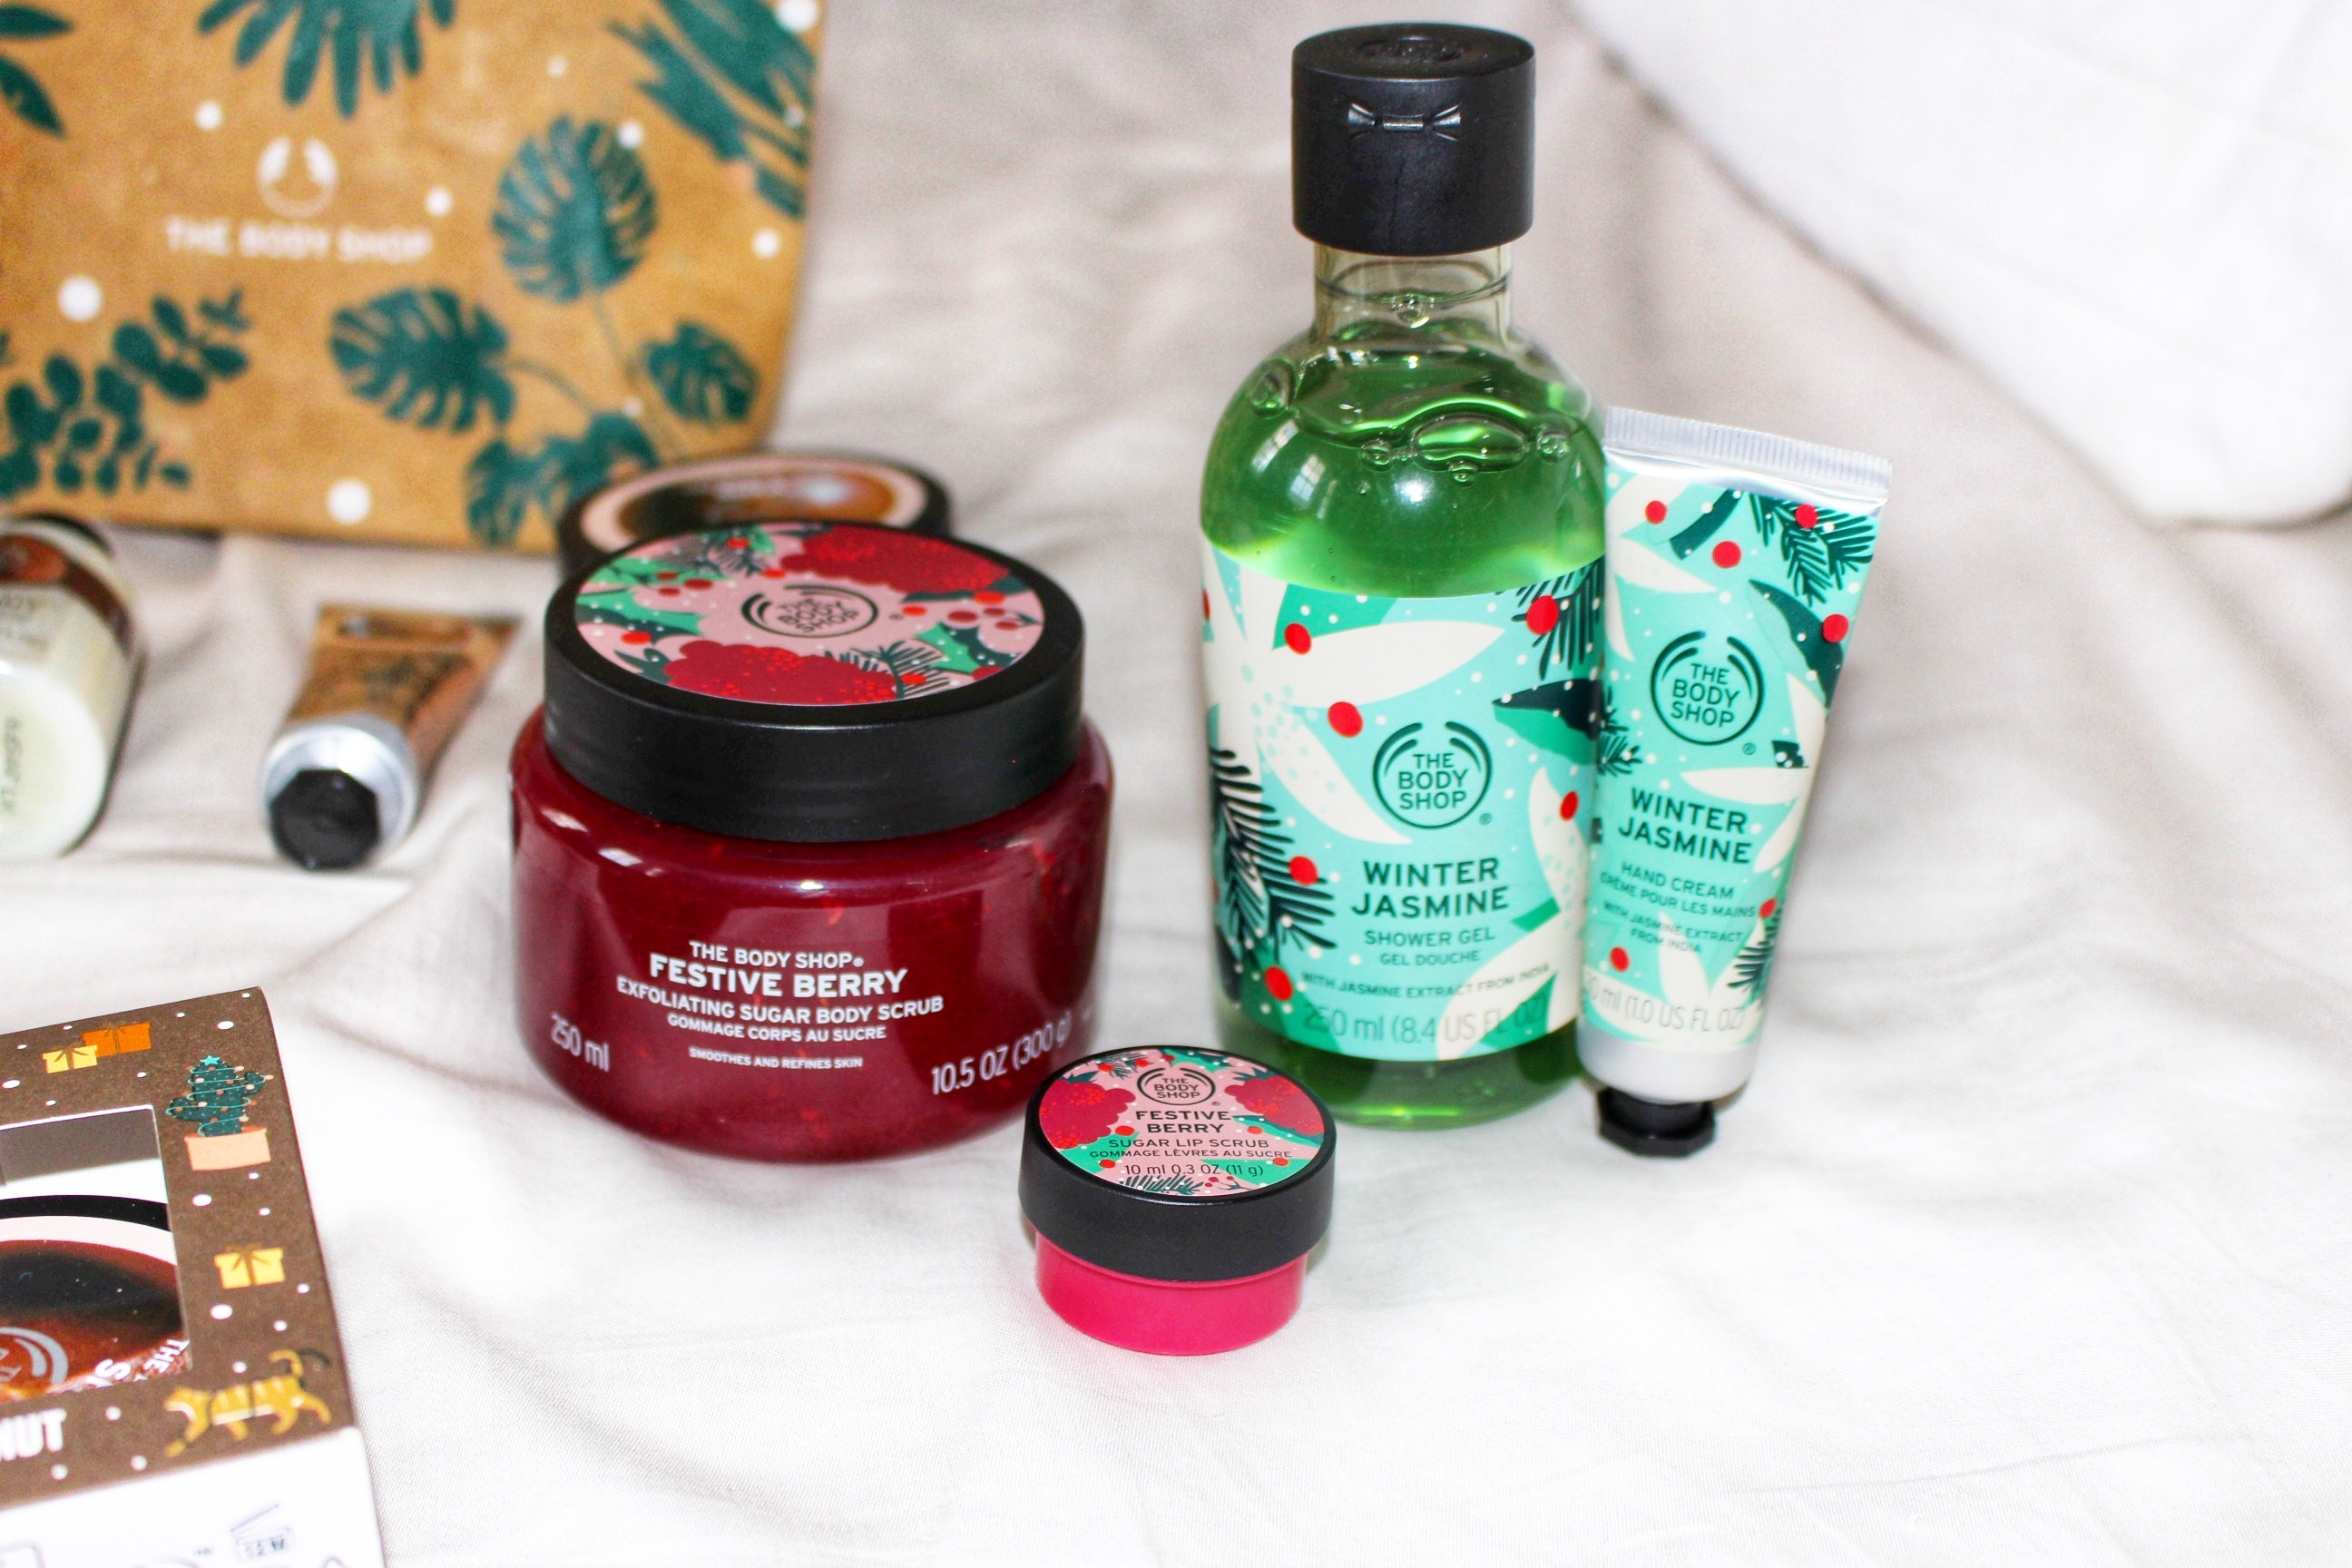 festive-winter-jasmine-body-wash-hand-cream-green-red--body-scrub-the-bodyshop-fragrant-christmas-gift-guide-raychel-says